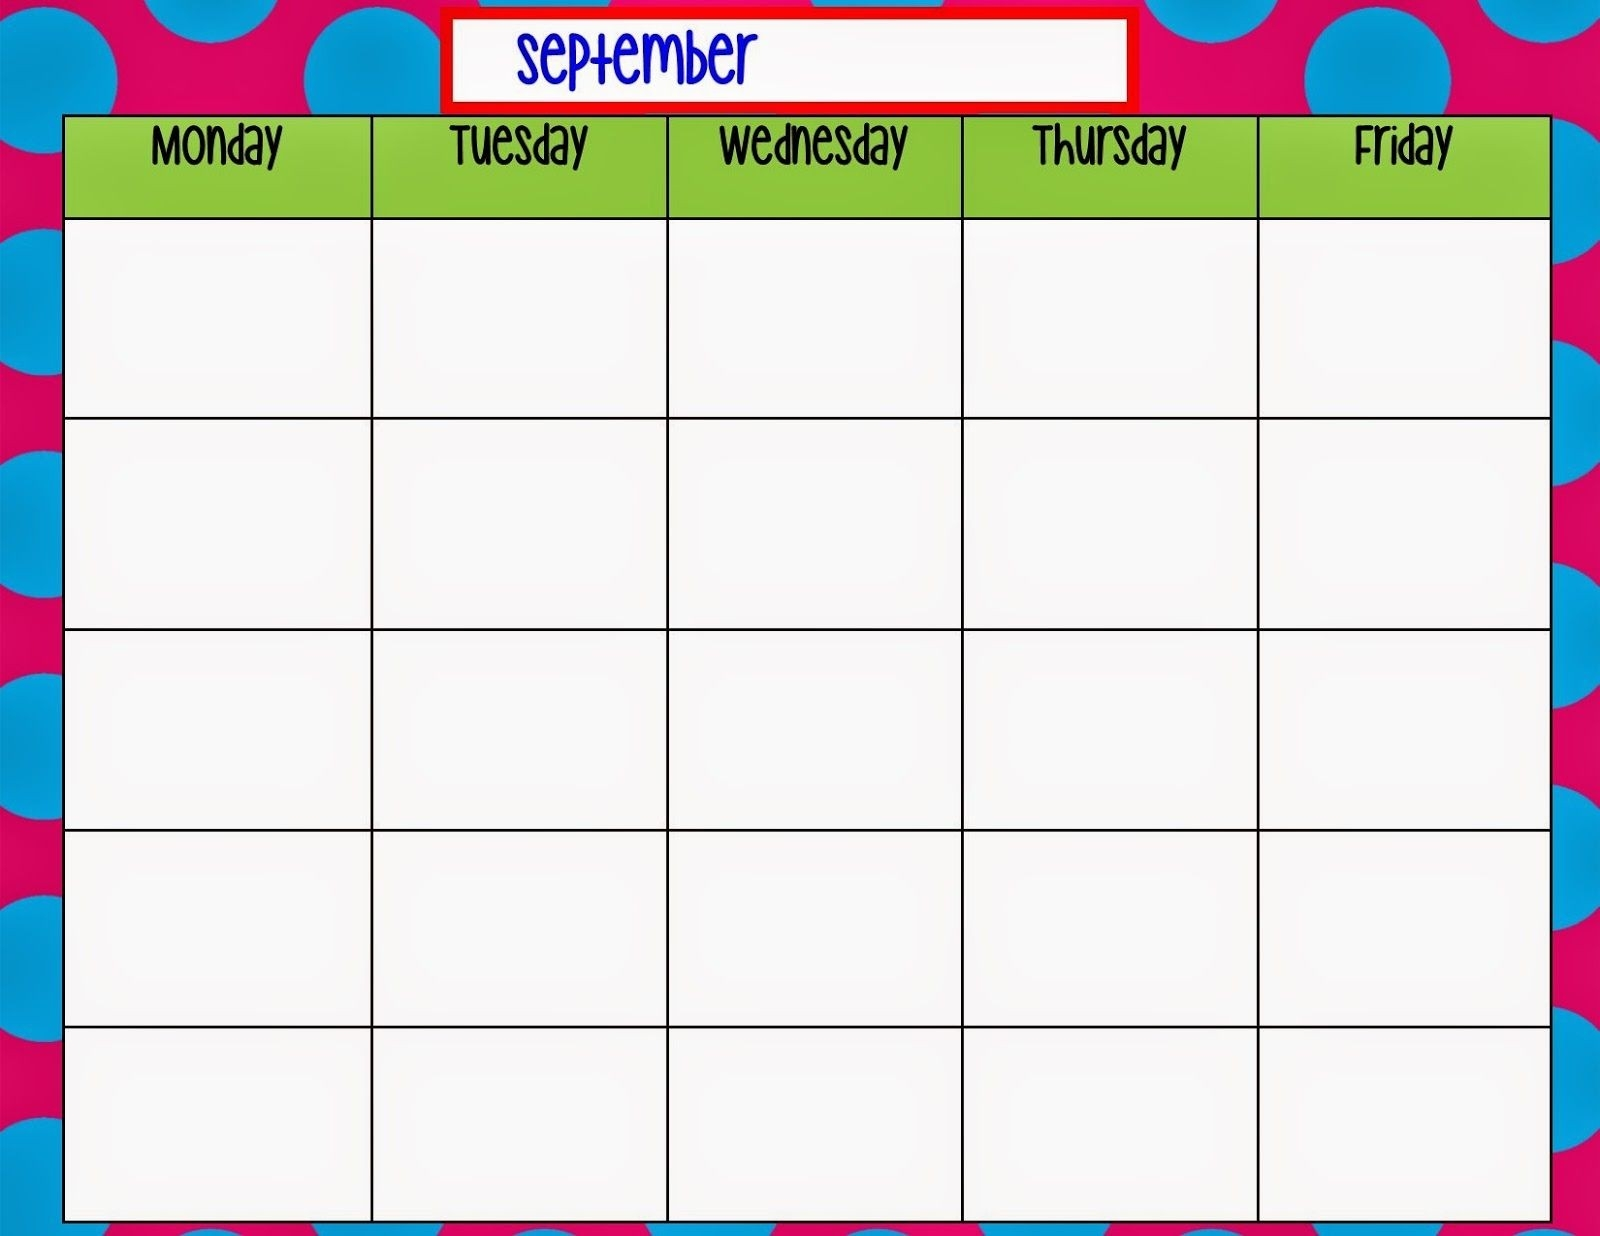 Monday Through Friday Calendar Template | Preschool | Weekly-Template Monday To Friday